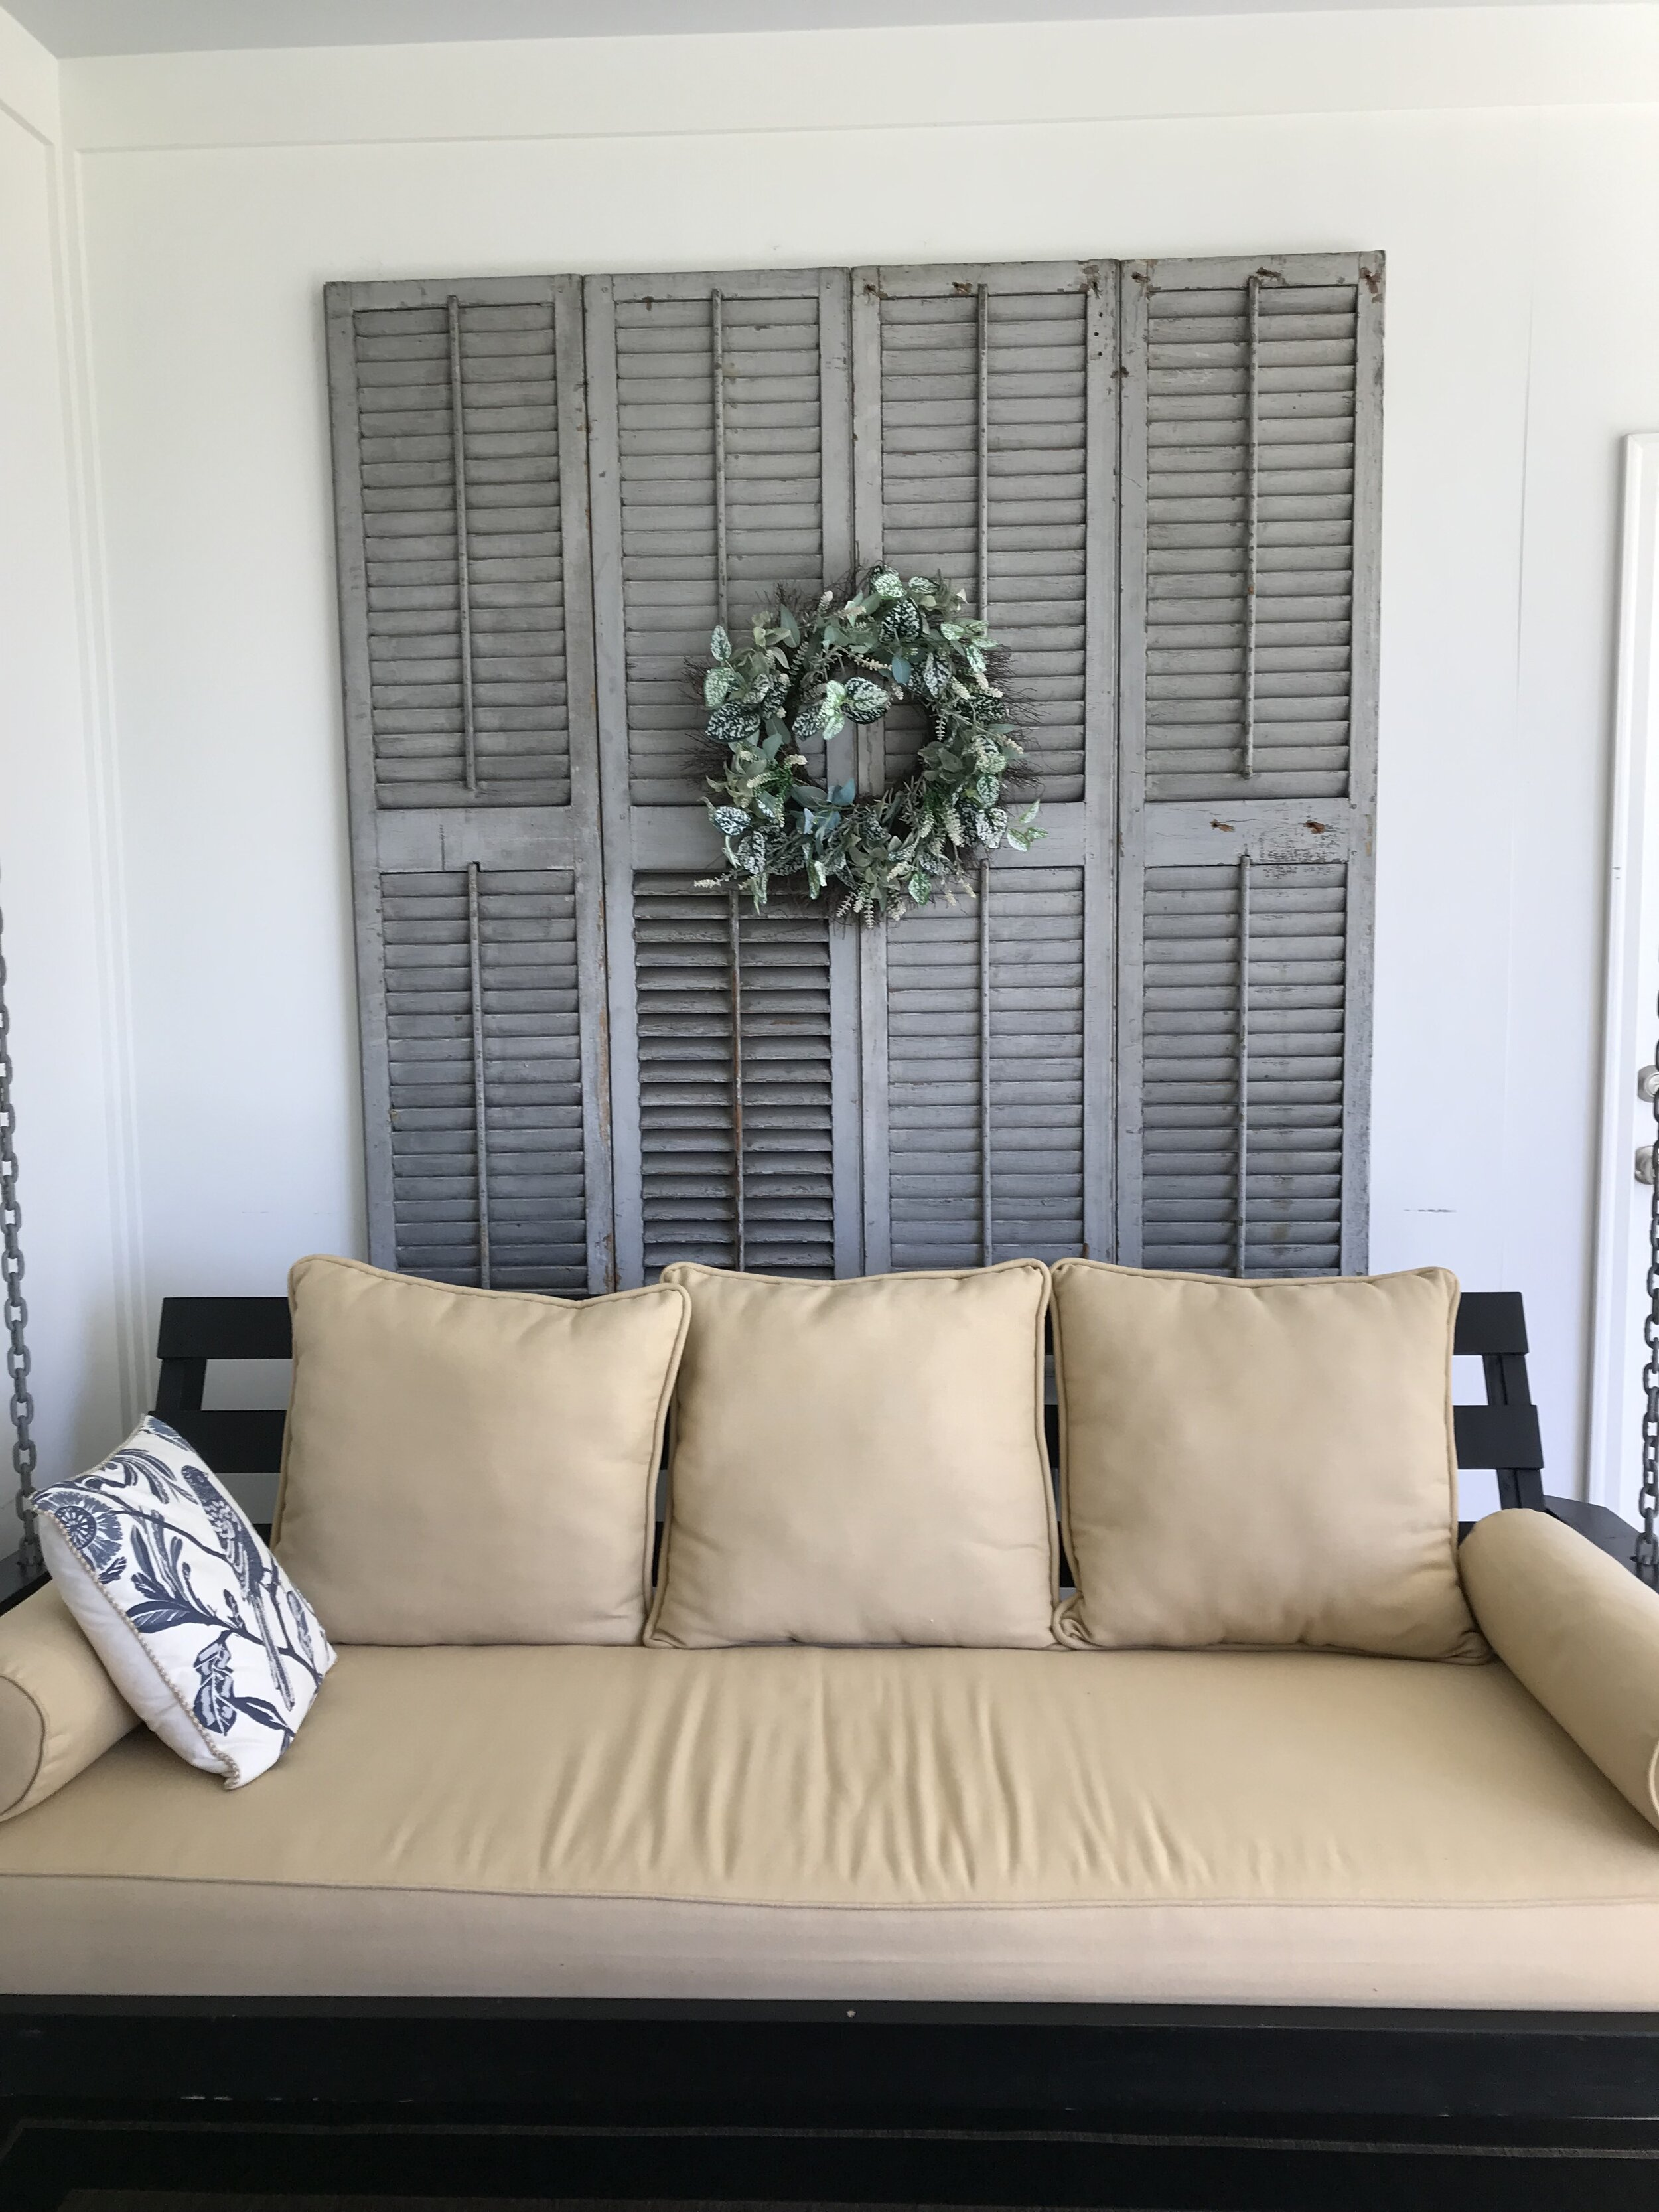 Shutters repurposed as decor. We love the texture these add to the space.